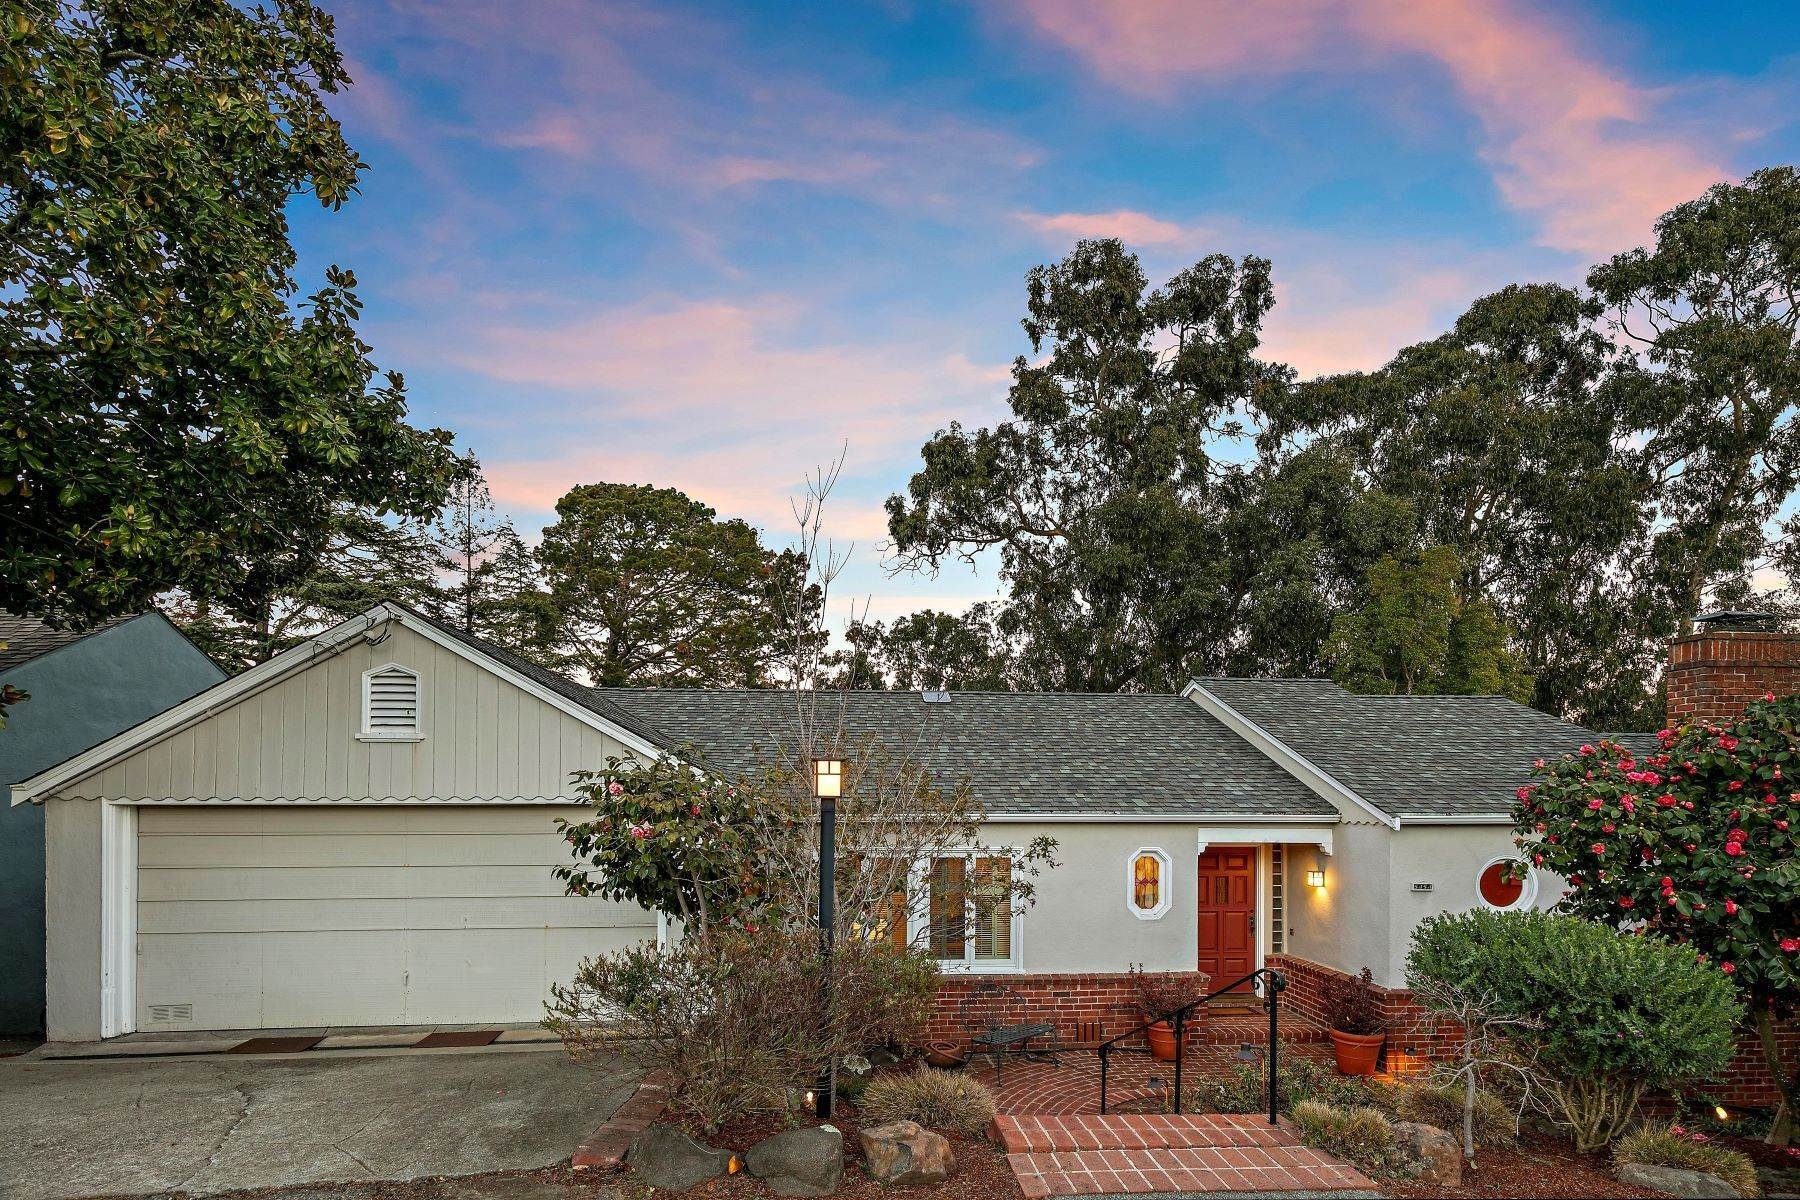 Single Family Homes for Sale at Updated Upper Rockridge Traditional 5454 Hilltop Crescent Oakland, California 94618 United States